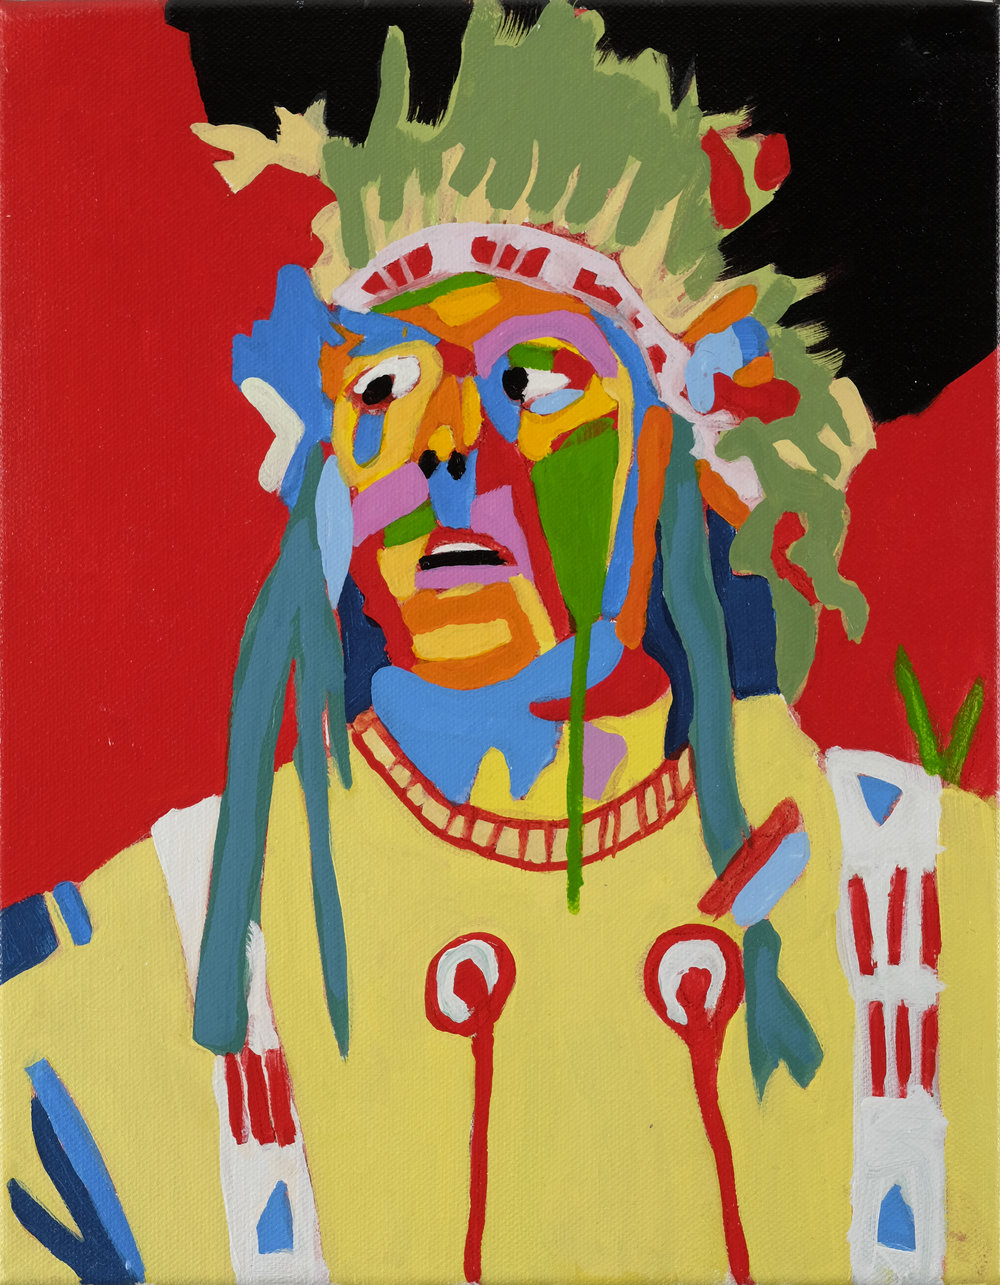 Desi Arnaz in the Hollywood Plains Indian Kit   12x10 inches Acrylic on canvas